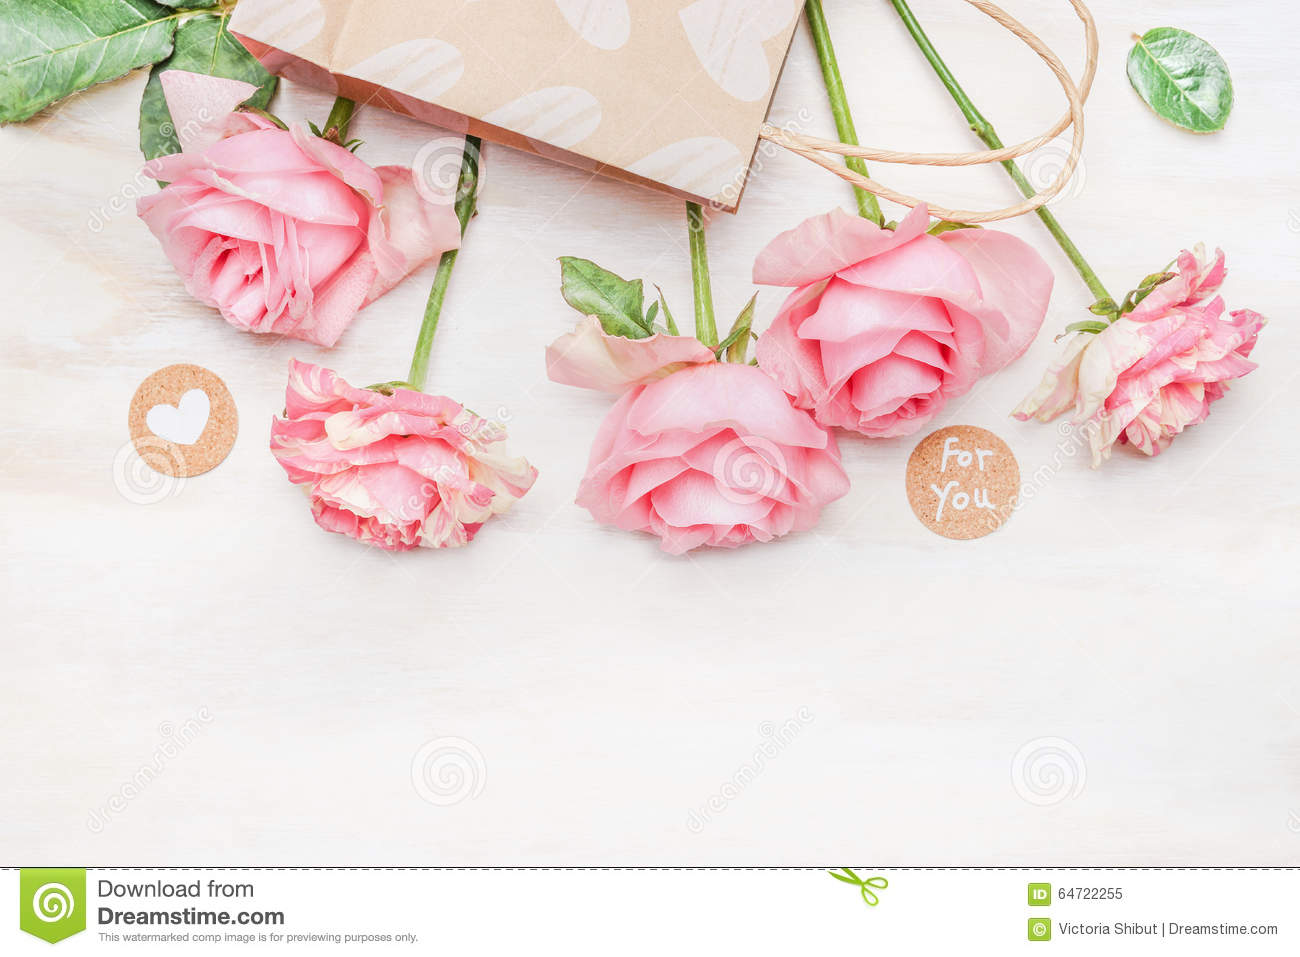 Pink pale roses paper shopping bag and round sign with message for you and heart on white wooden background, top view